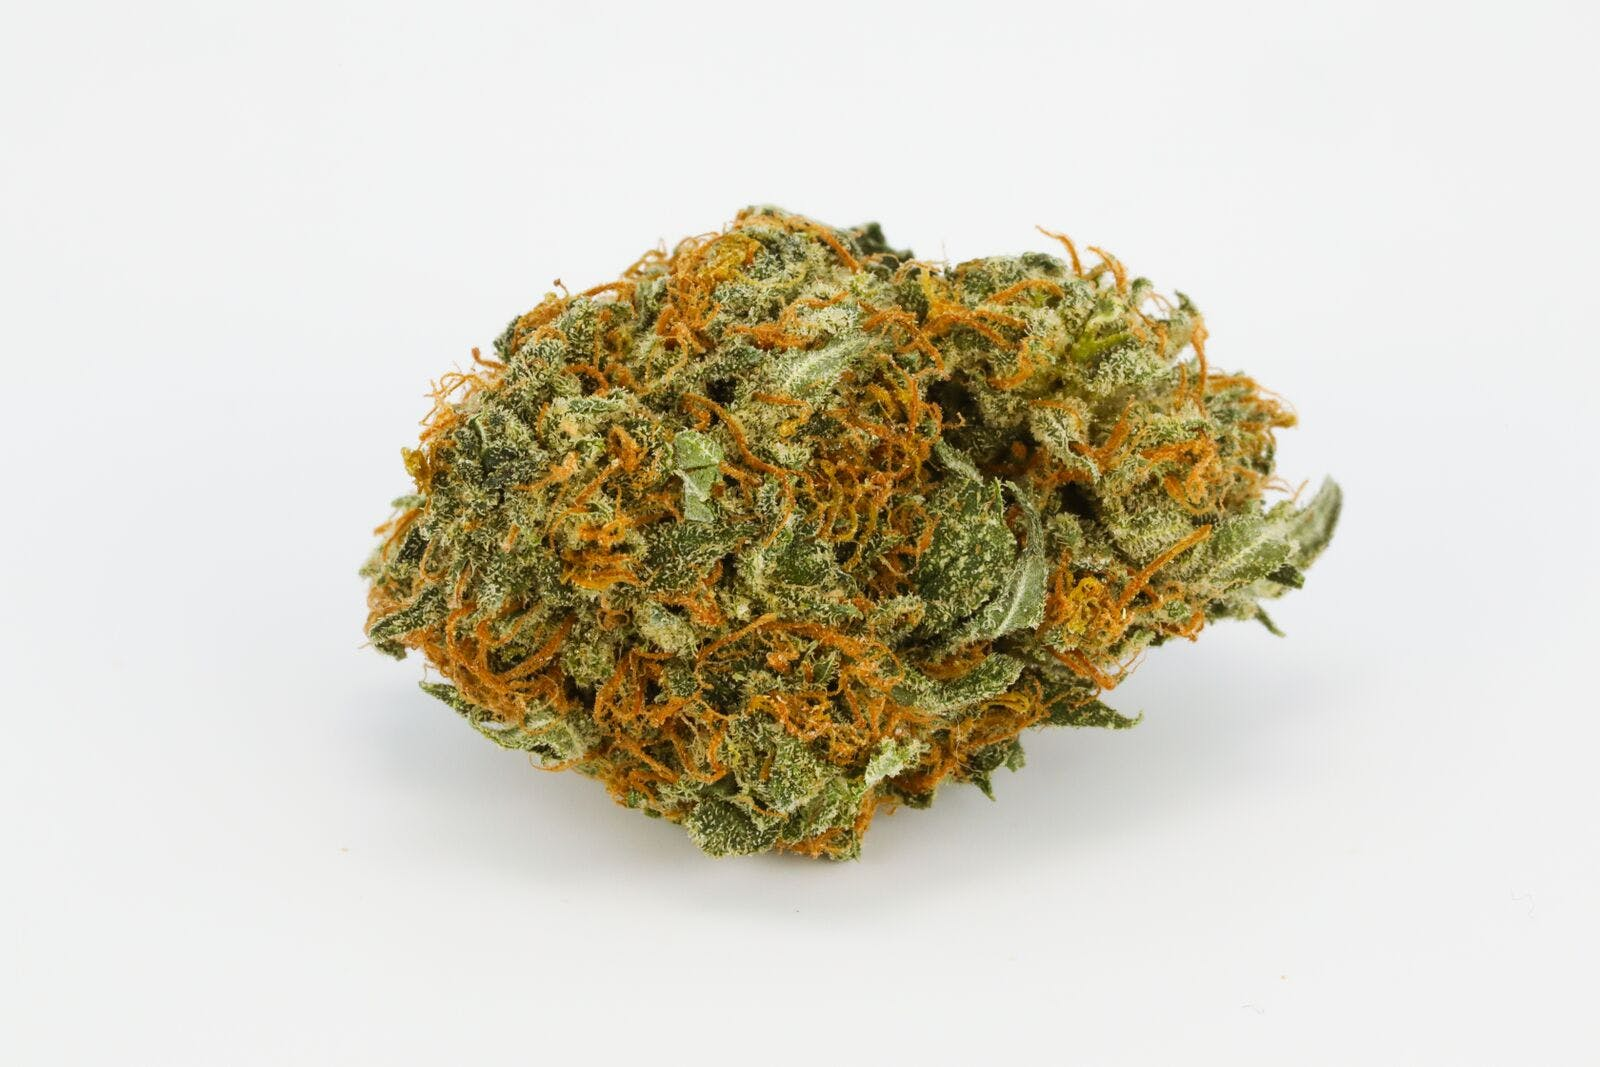 Alien Rock Candy Weed; Alien Rock Candy Cannabis Strain; Alien Rock Candy Hybrid Marijuana Strain